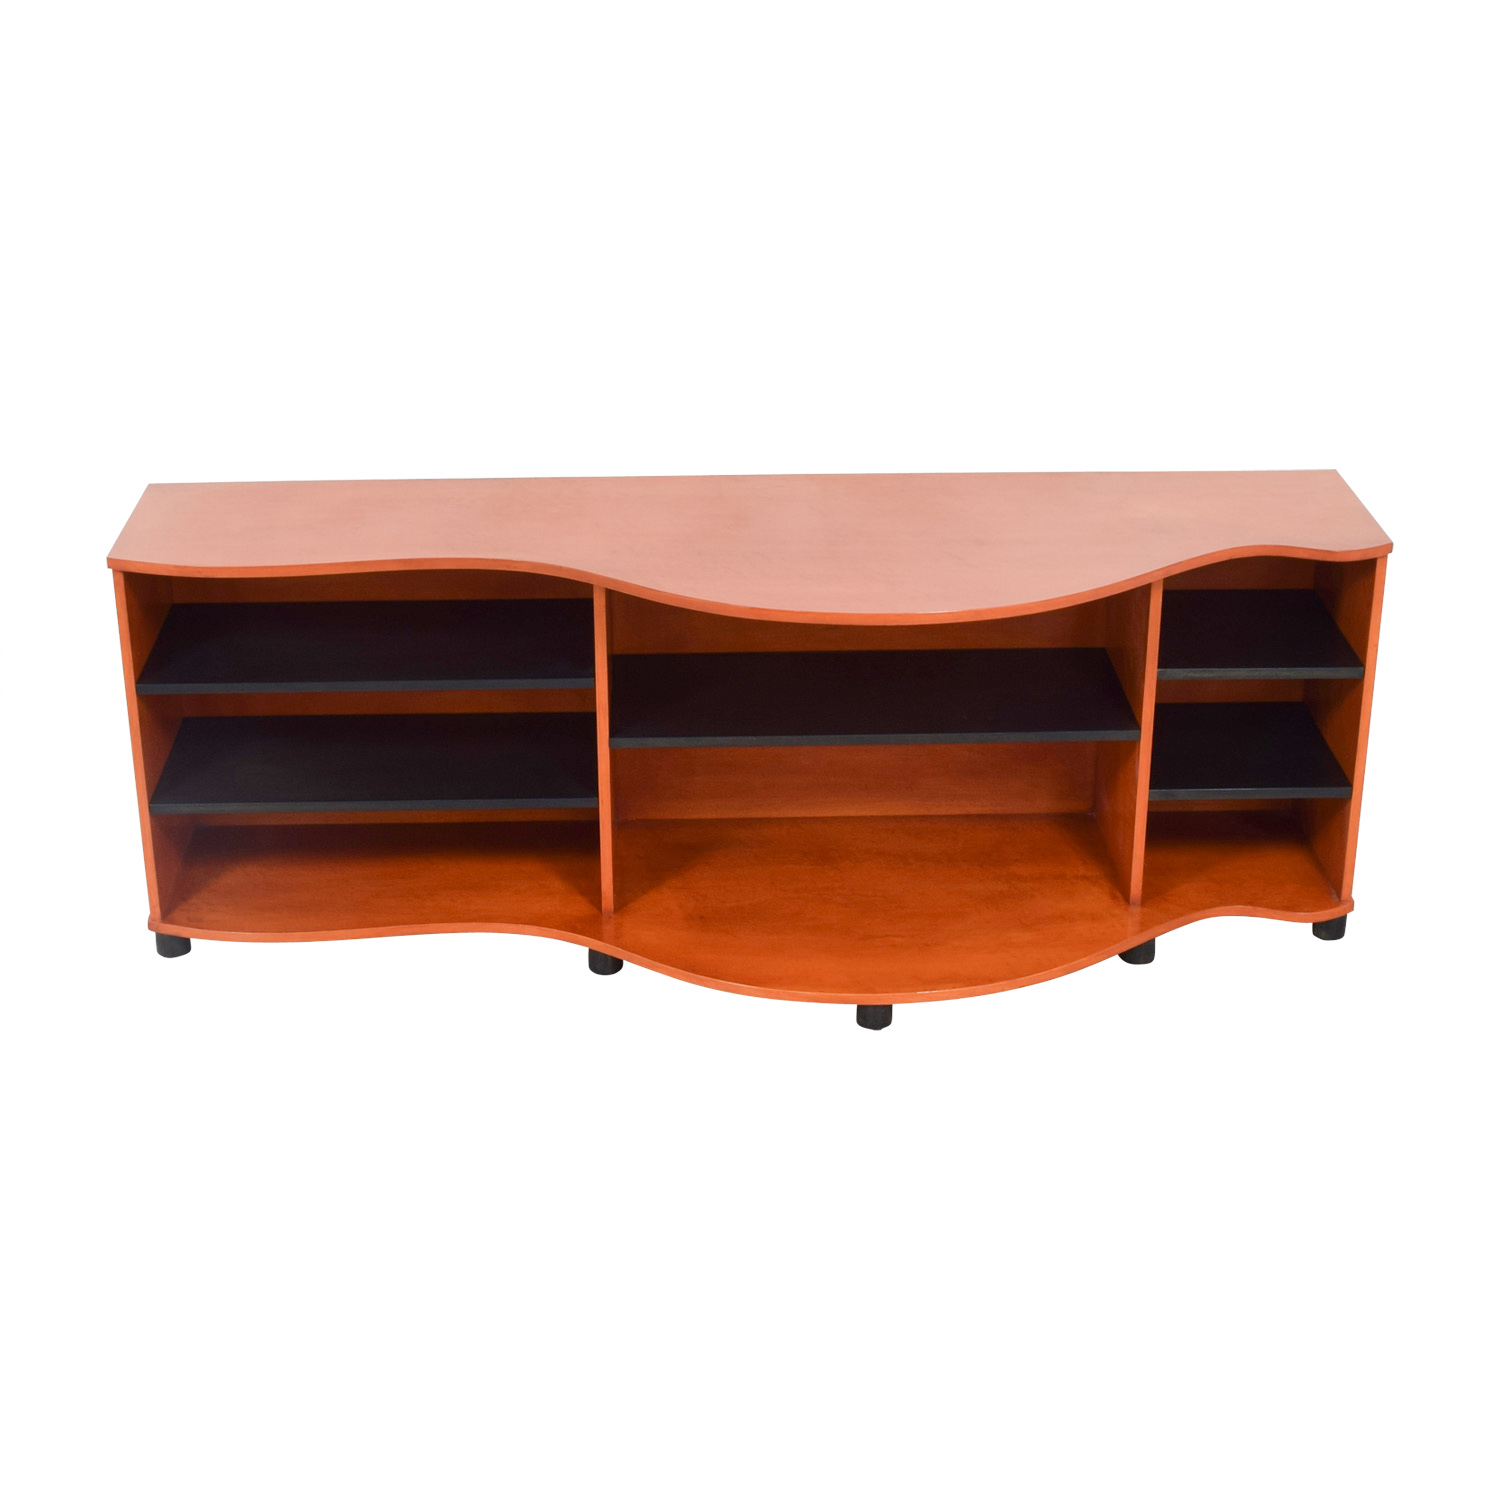 Brown and Black Sideboard with Shelves Storage